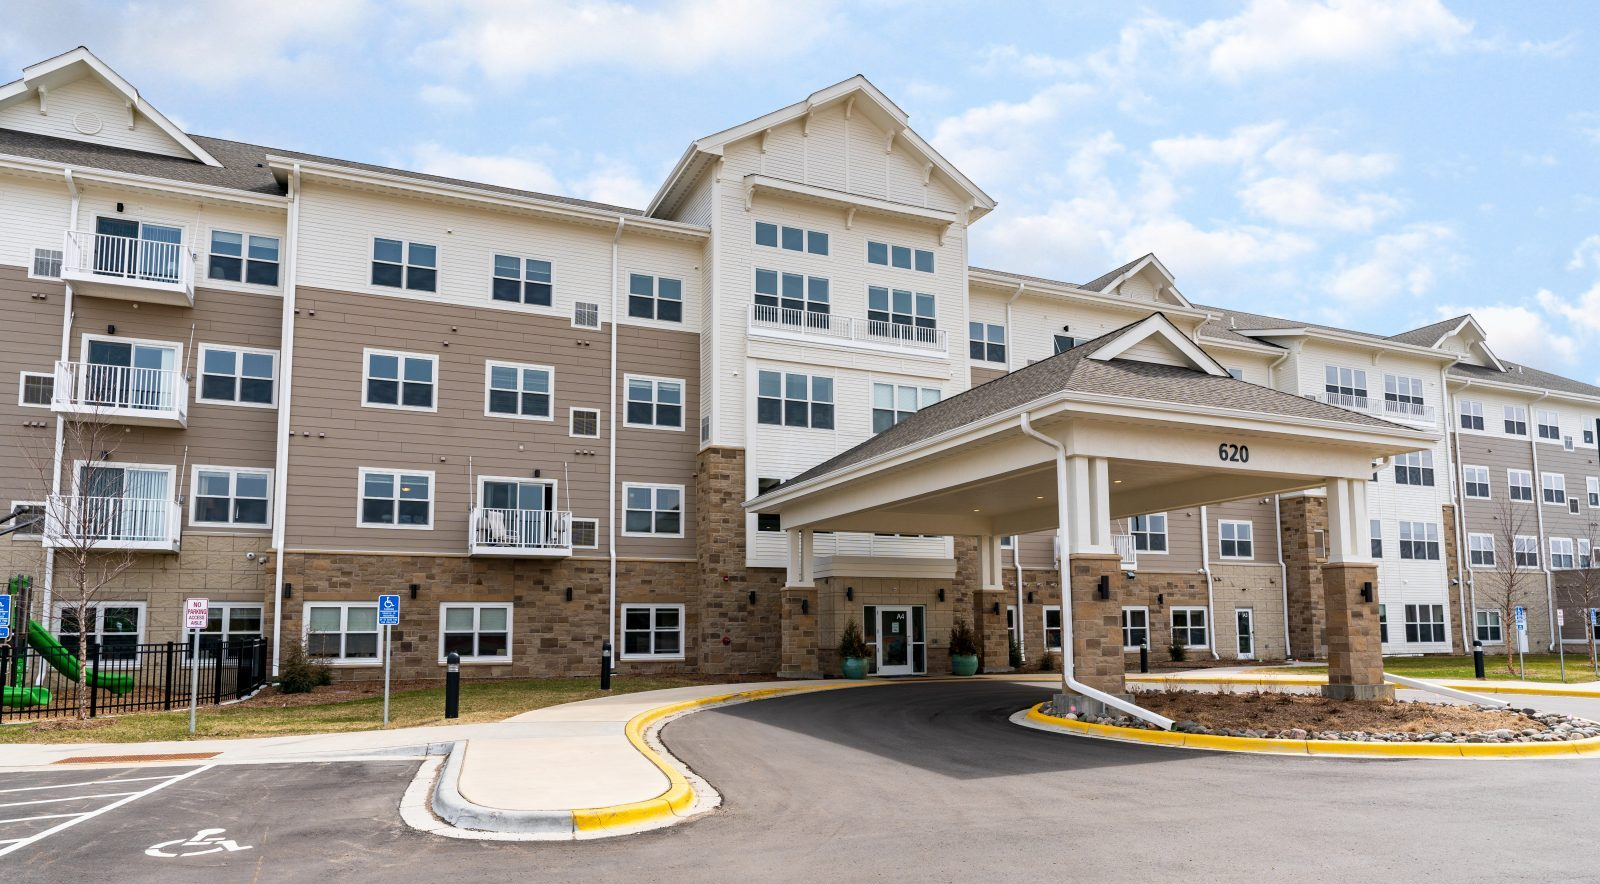 Chosen Best in Senior Housing in Chanhassen - Riley Crossing Senior Living